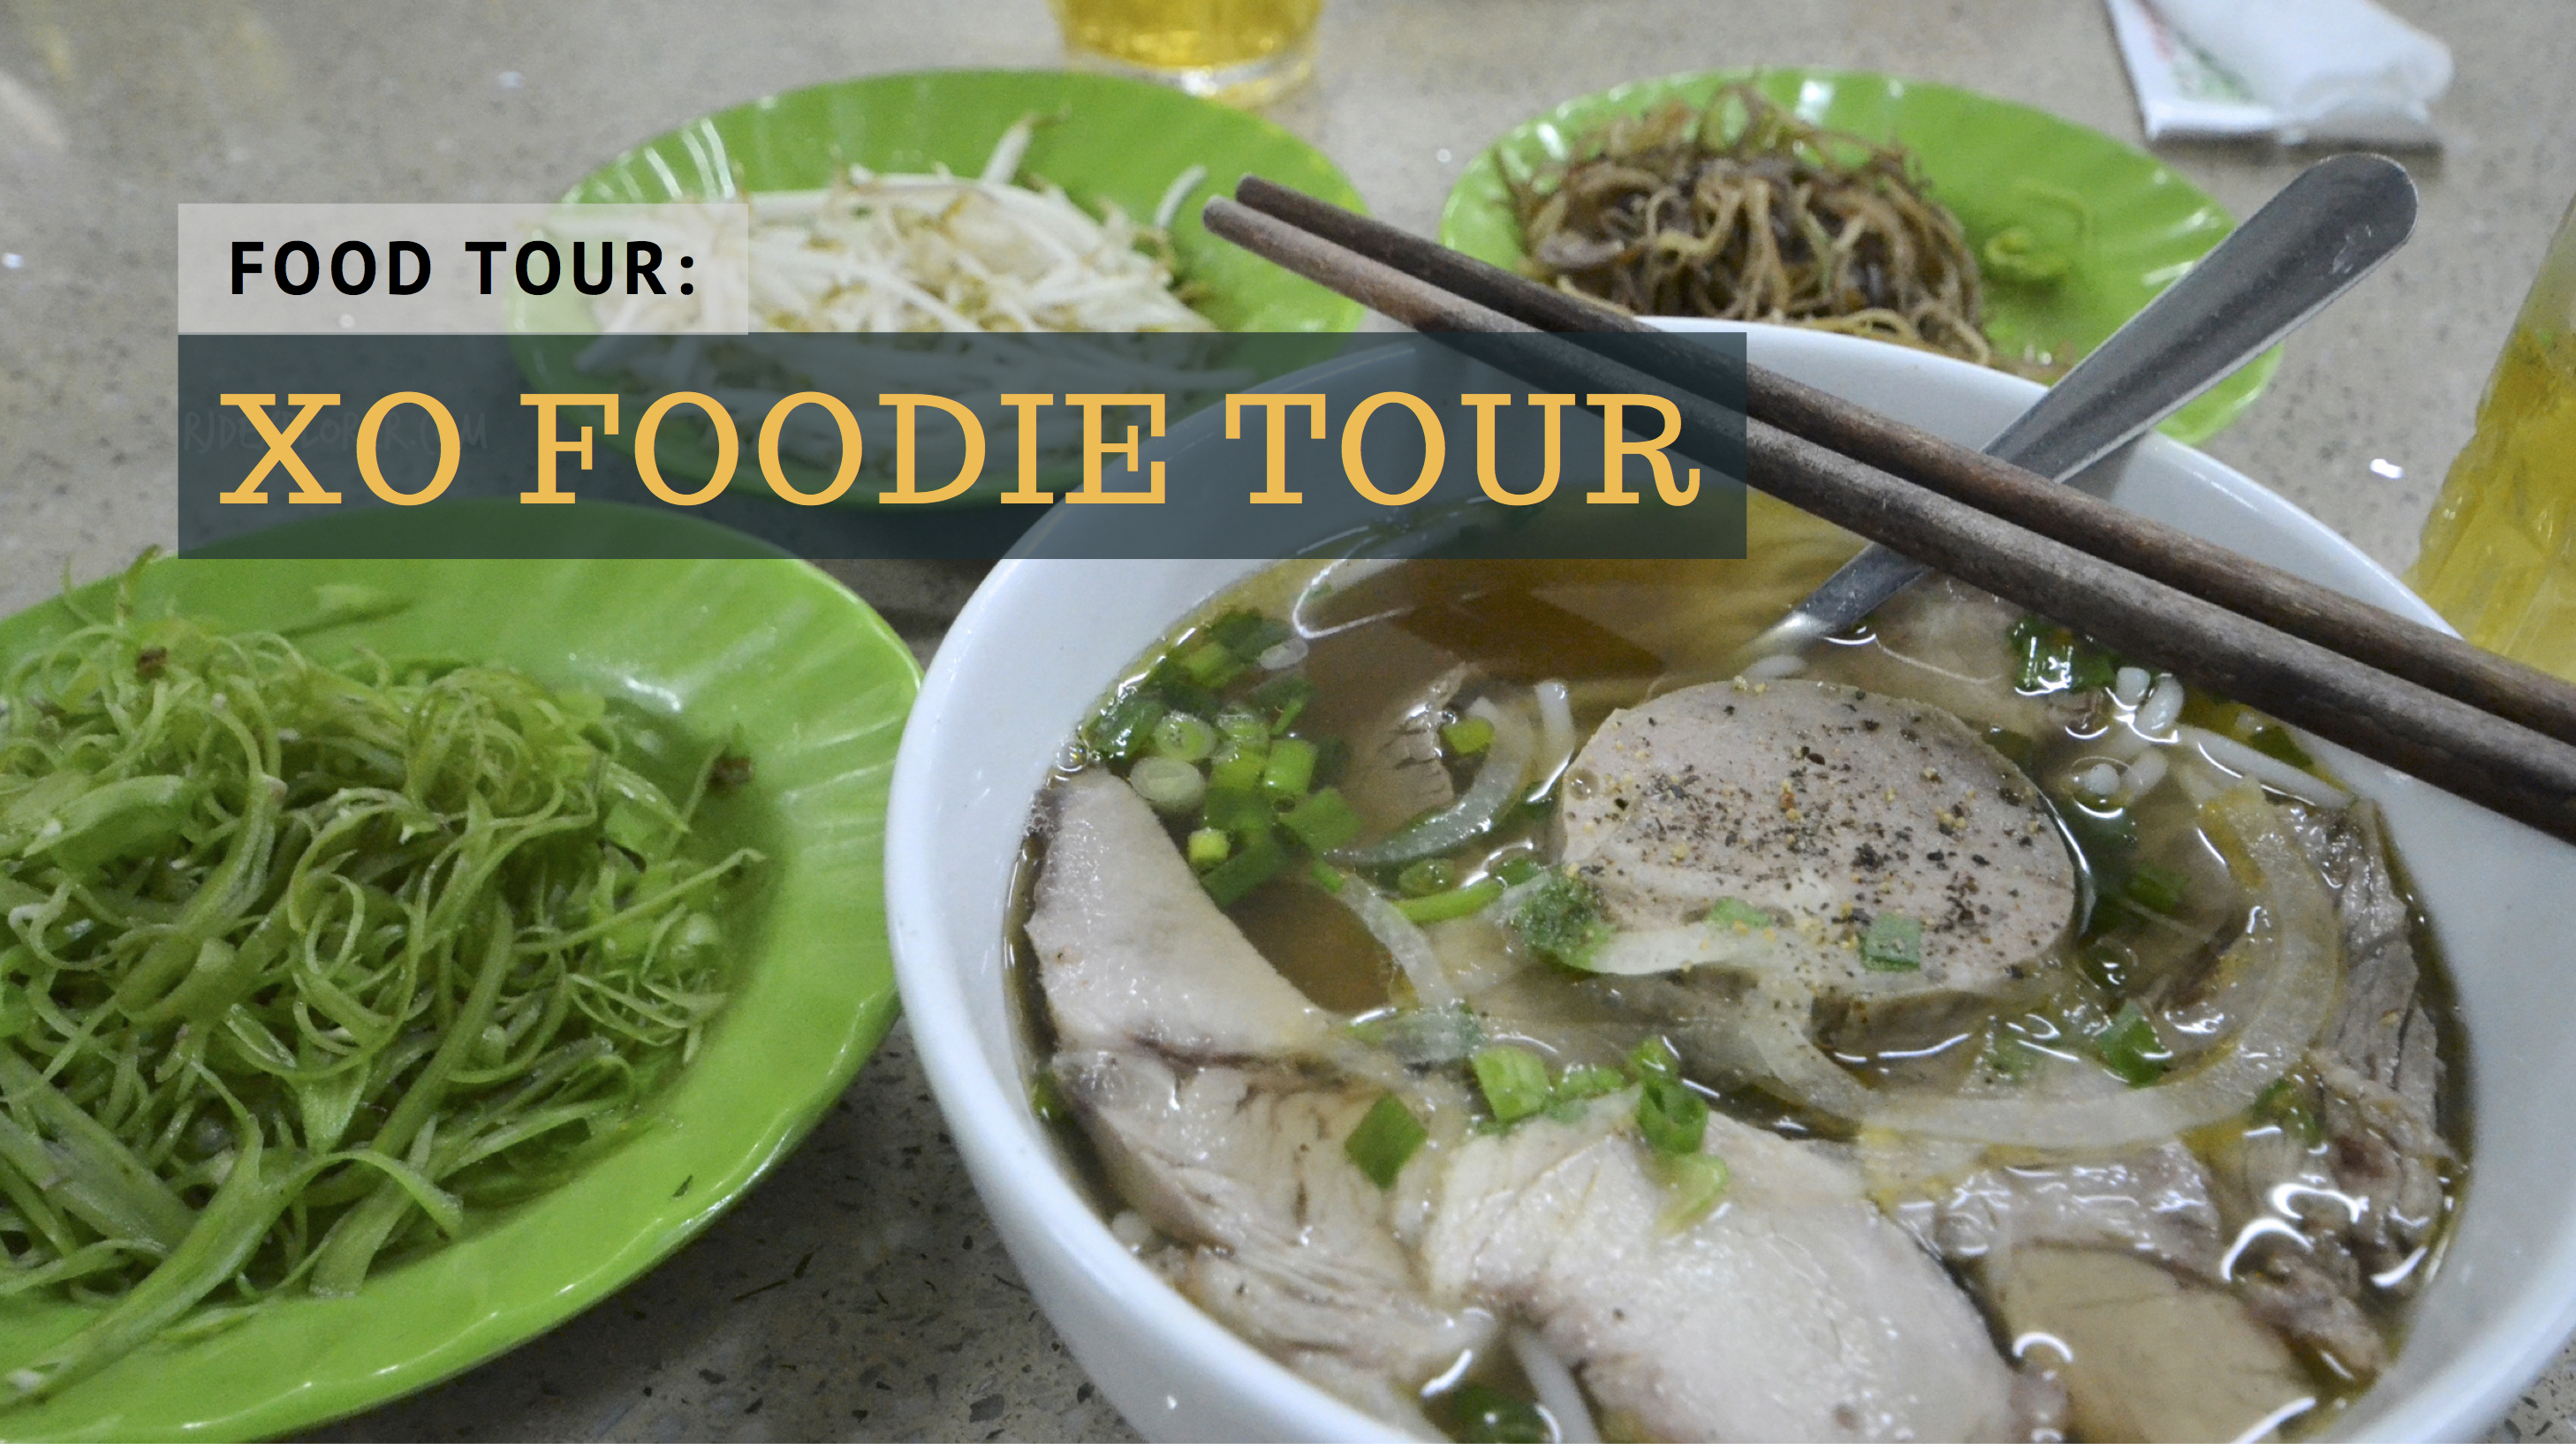 HO CHI MINH CITY | XO Foodie Tour: Saigon's Food and Culture on Two Wheels - iWander. iExperience. iKwento